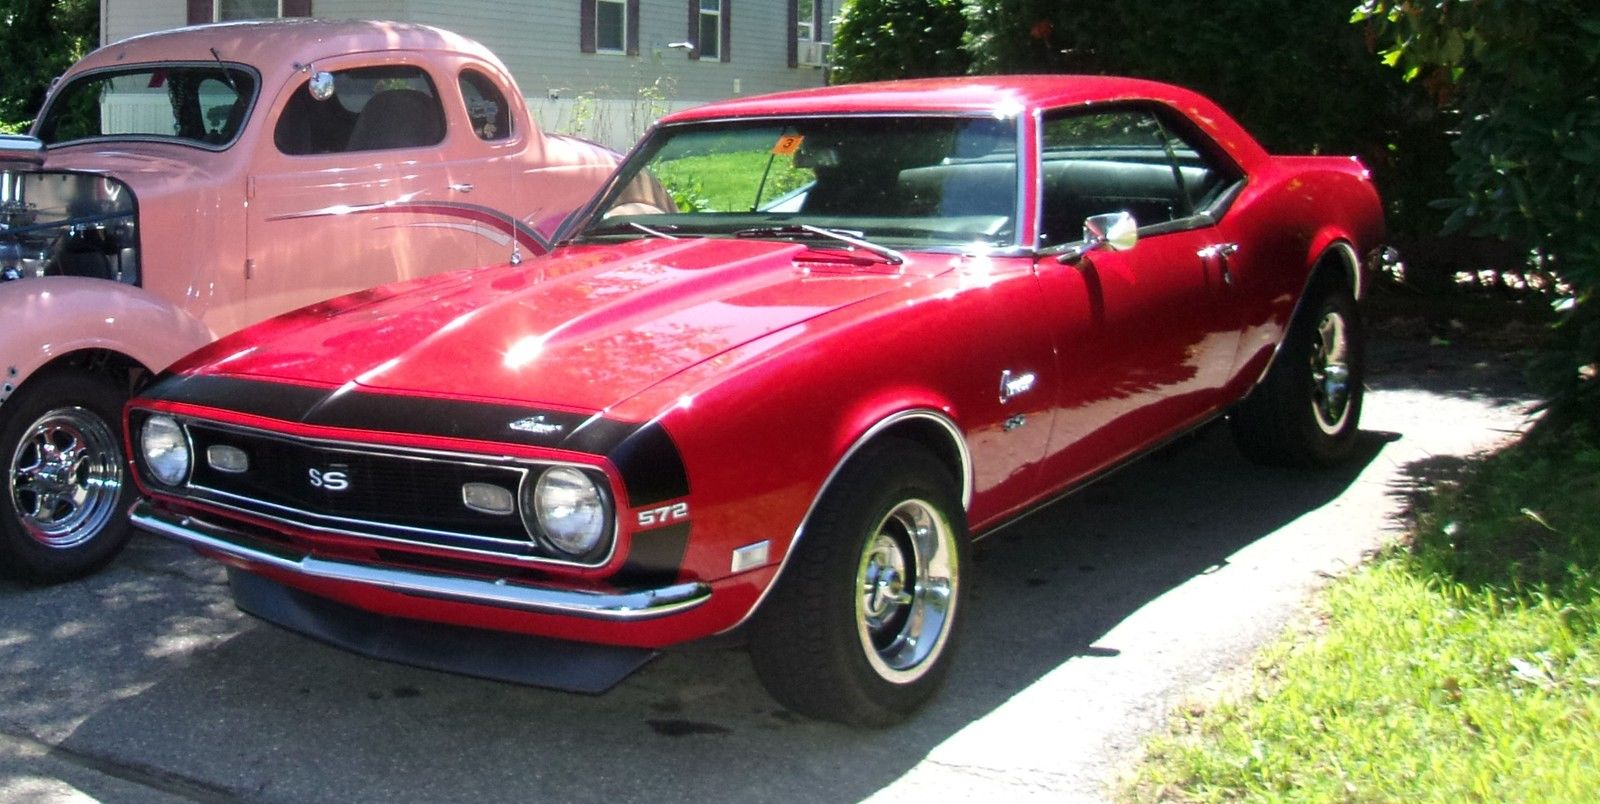 1968 Chevrolet Camaro Ss Matador Red 572 Big Block 4 Speed Muscle Car Completely Redone Classic For Sale